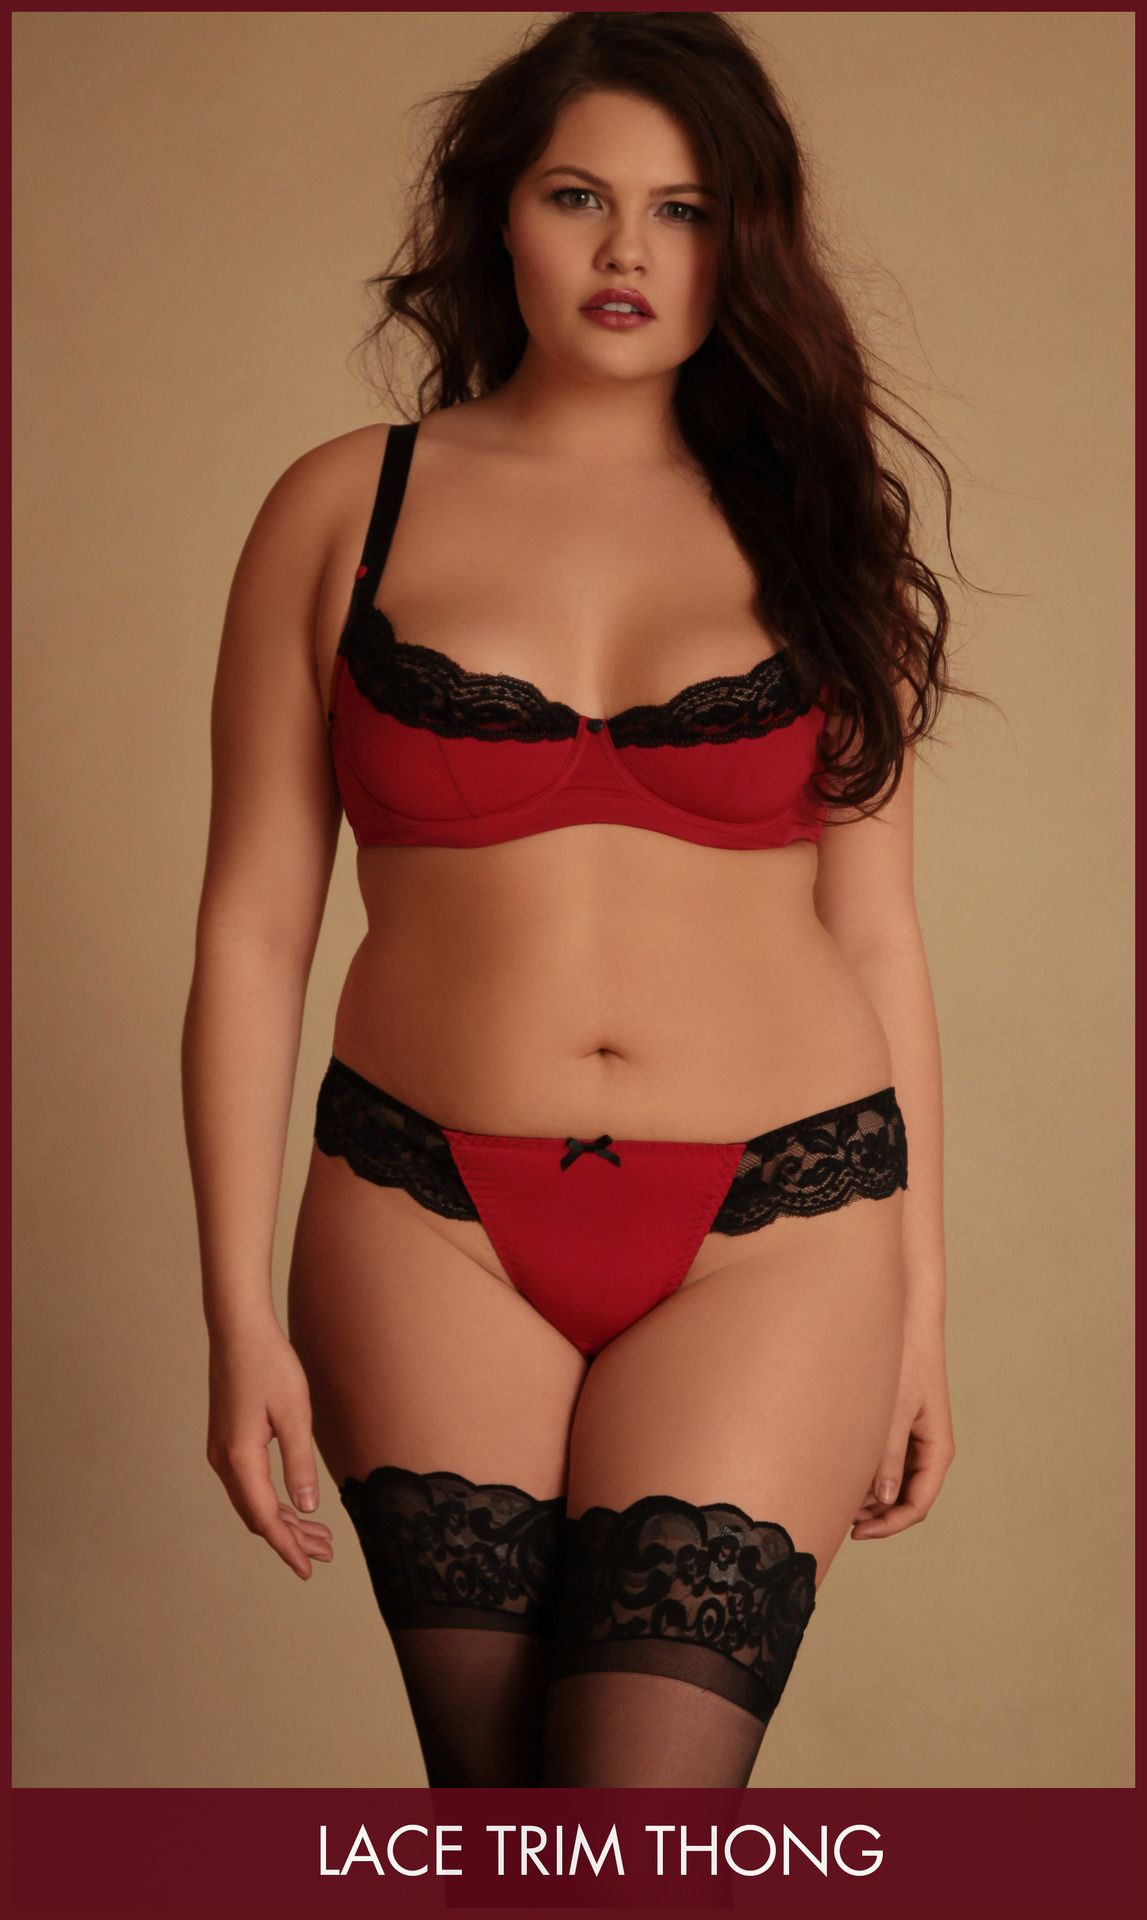 Bbw Lingerie Tumblr Minimalist pindebby ward on plus size outfits | pinterest | curvy and